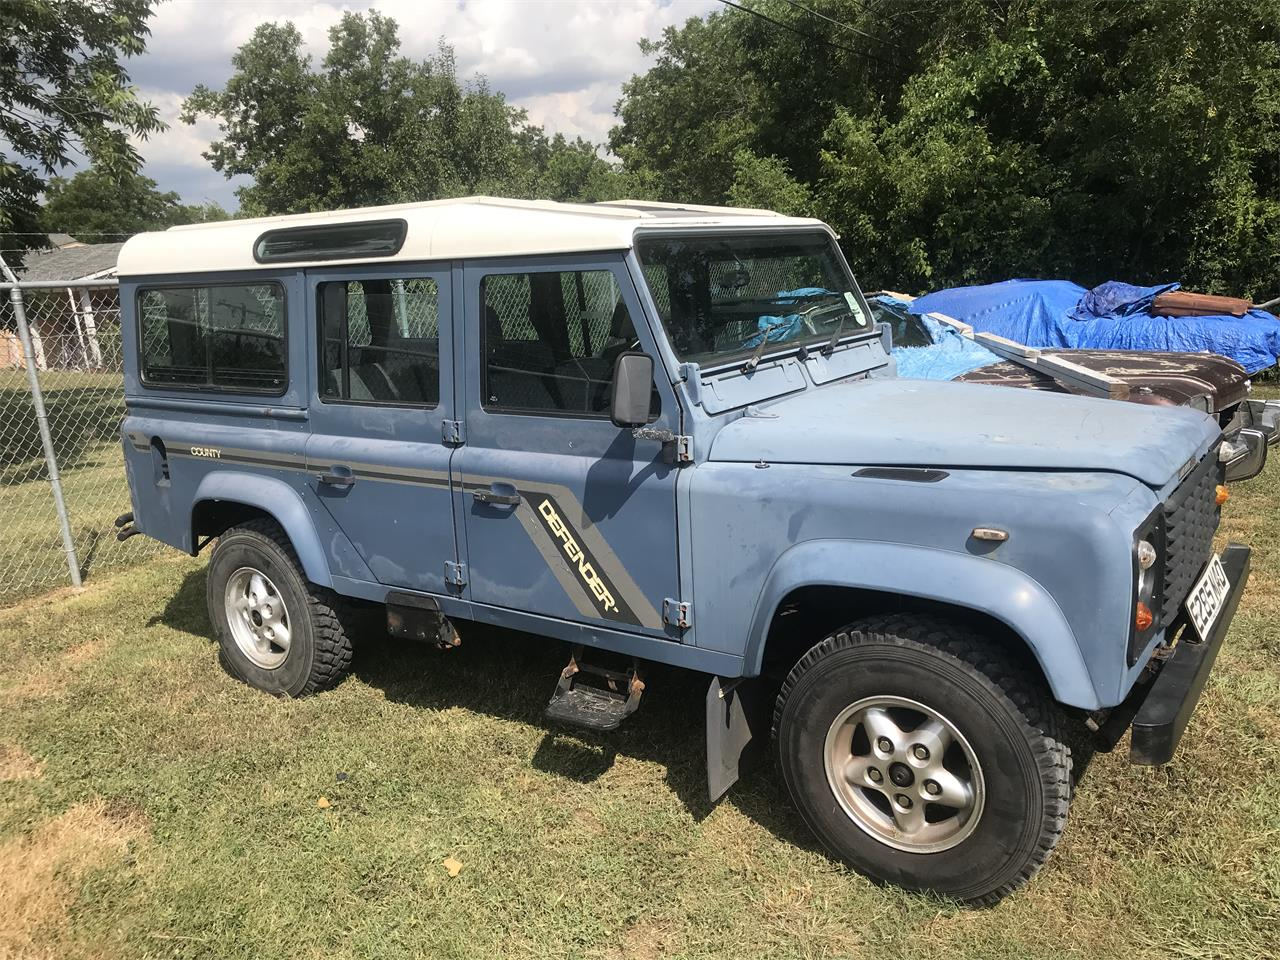 1988 Land Rover Defender For Sale In Waco, TX